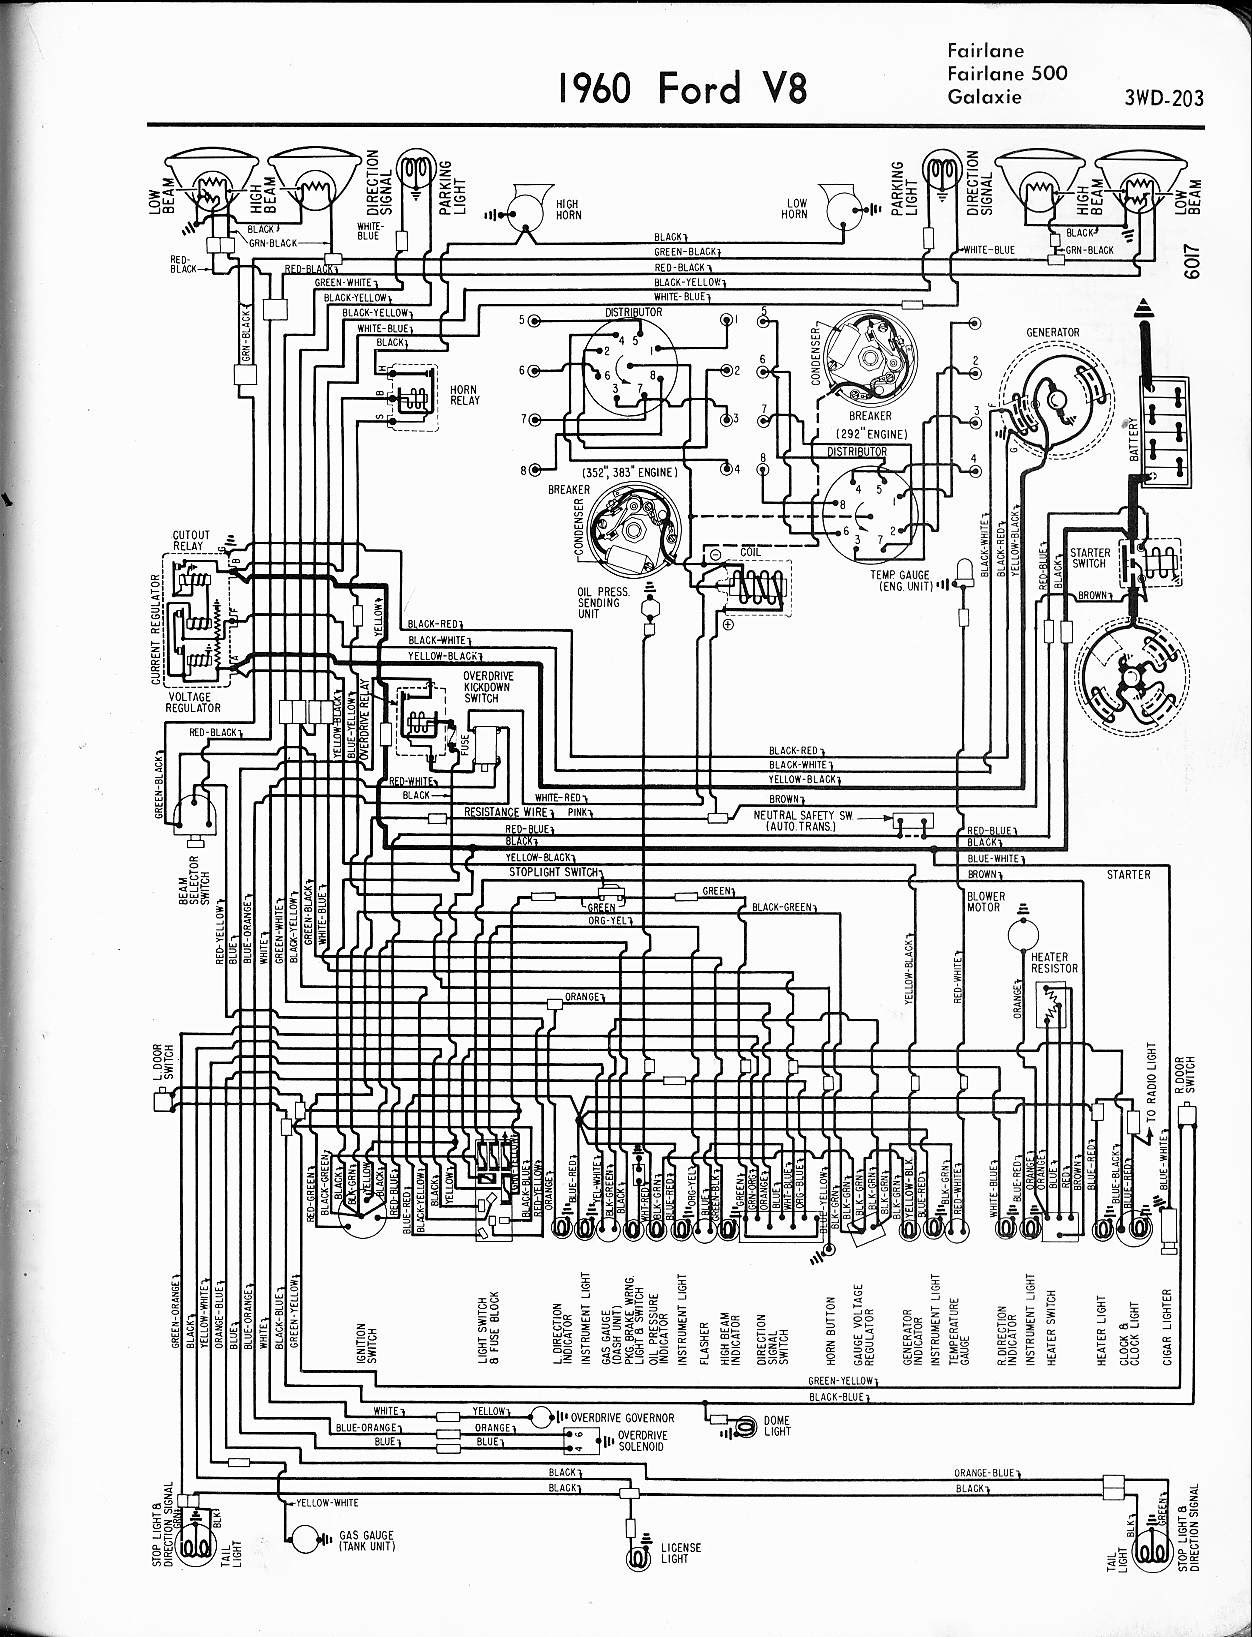 Diagram 1955 Thunderbird Turn Signal Wiring Diagram Full Version Hd Quality Wiring Diagram Diagramvetac Chihachiamato It